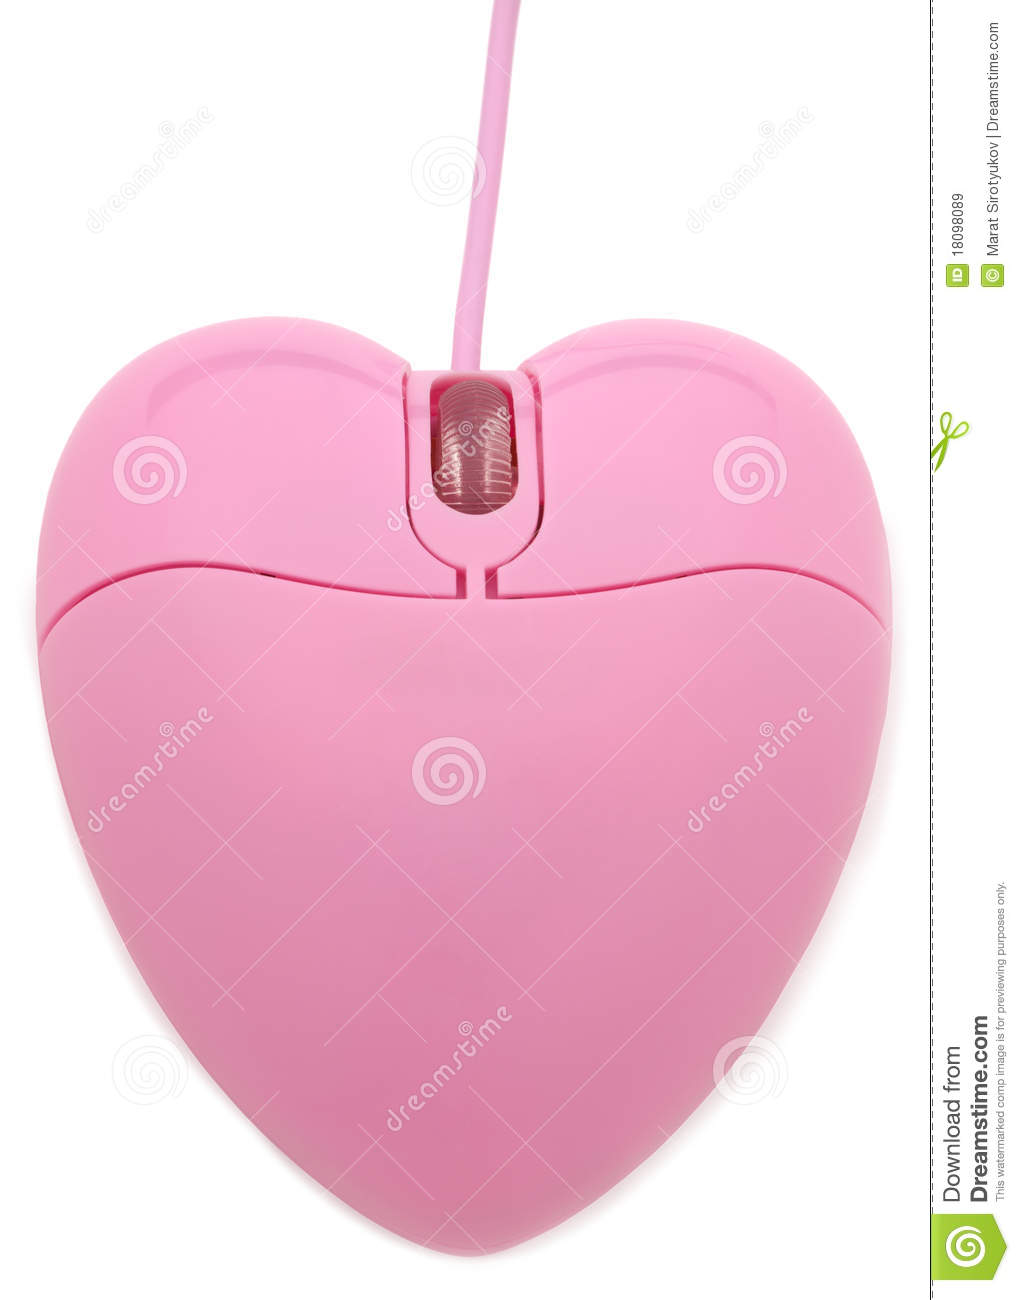 091a26e5bd3 Heart-Shaped Computer Mouse Stock Image - Image of cable